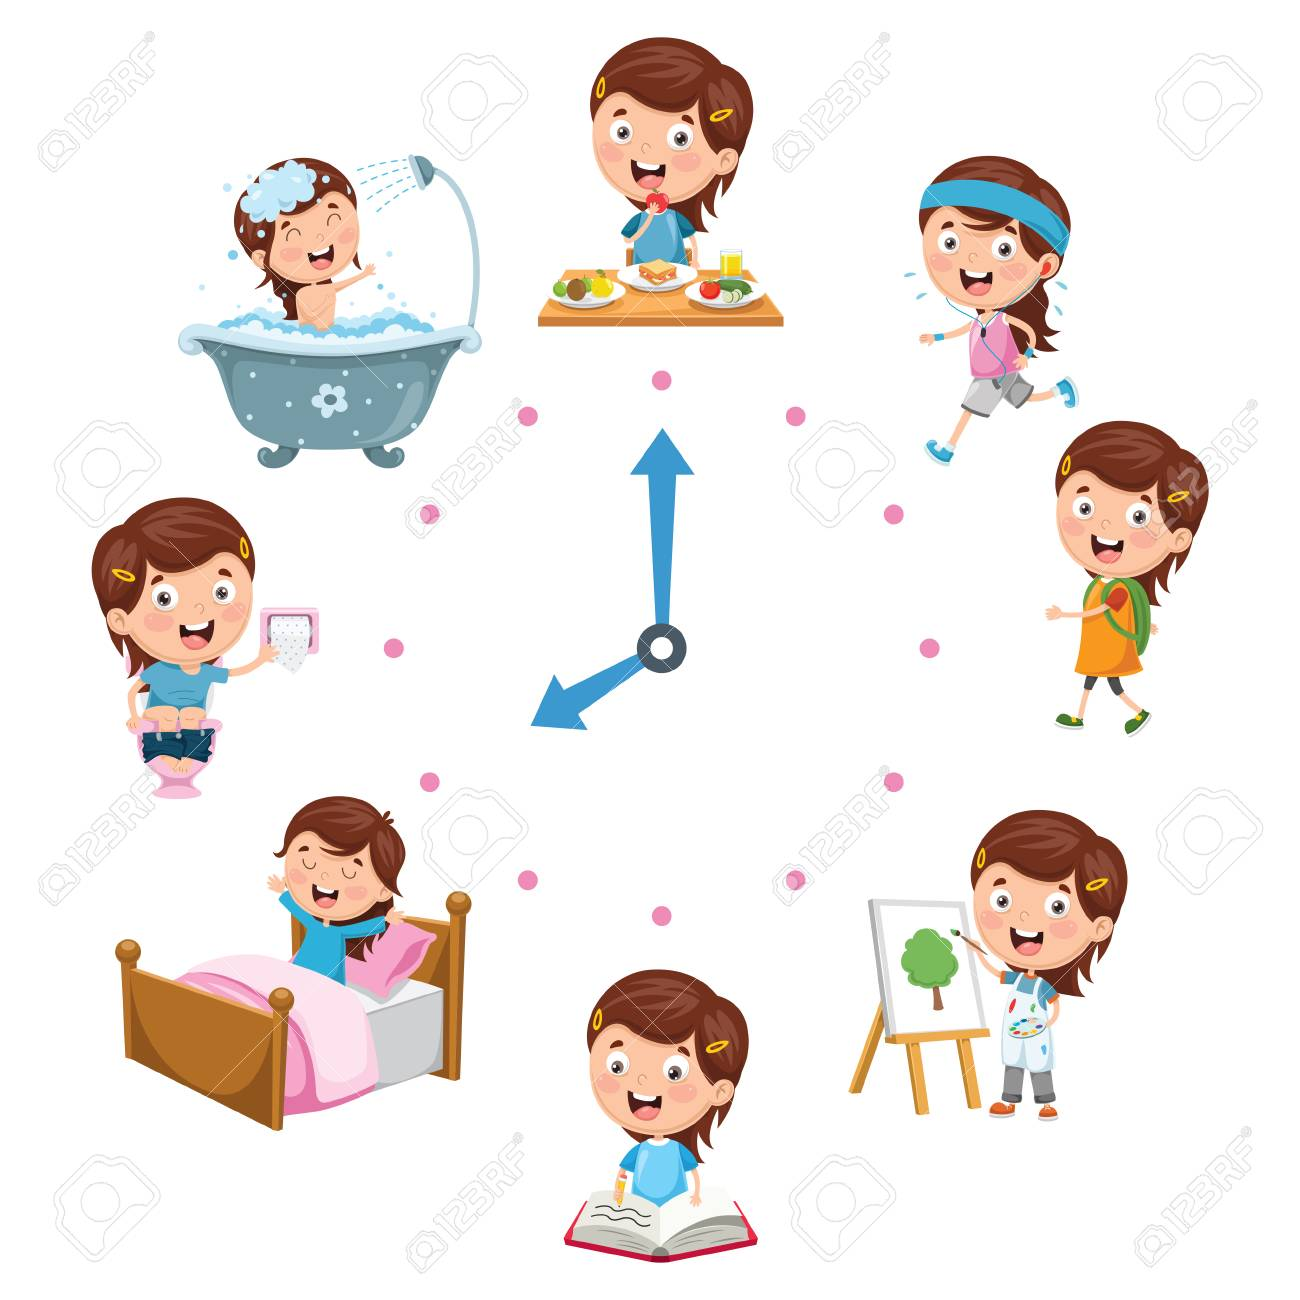 Vector Illustration Of Kids Daily Routine Activities.